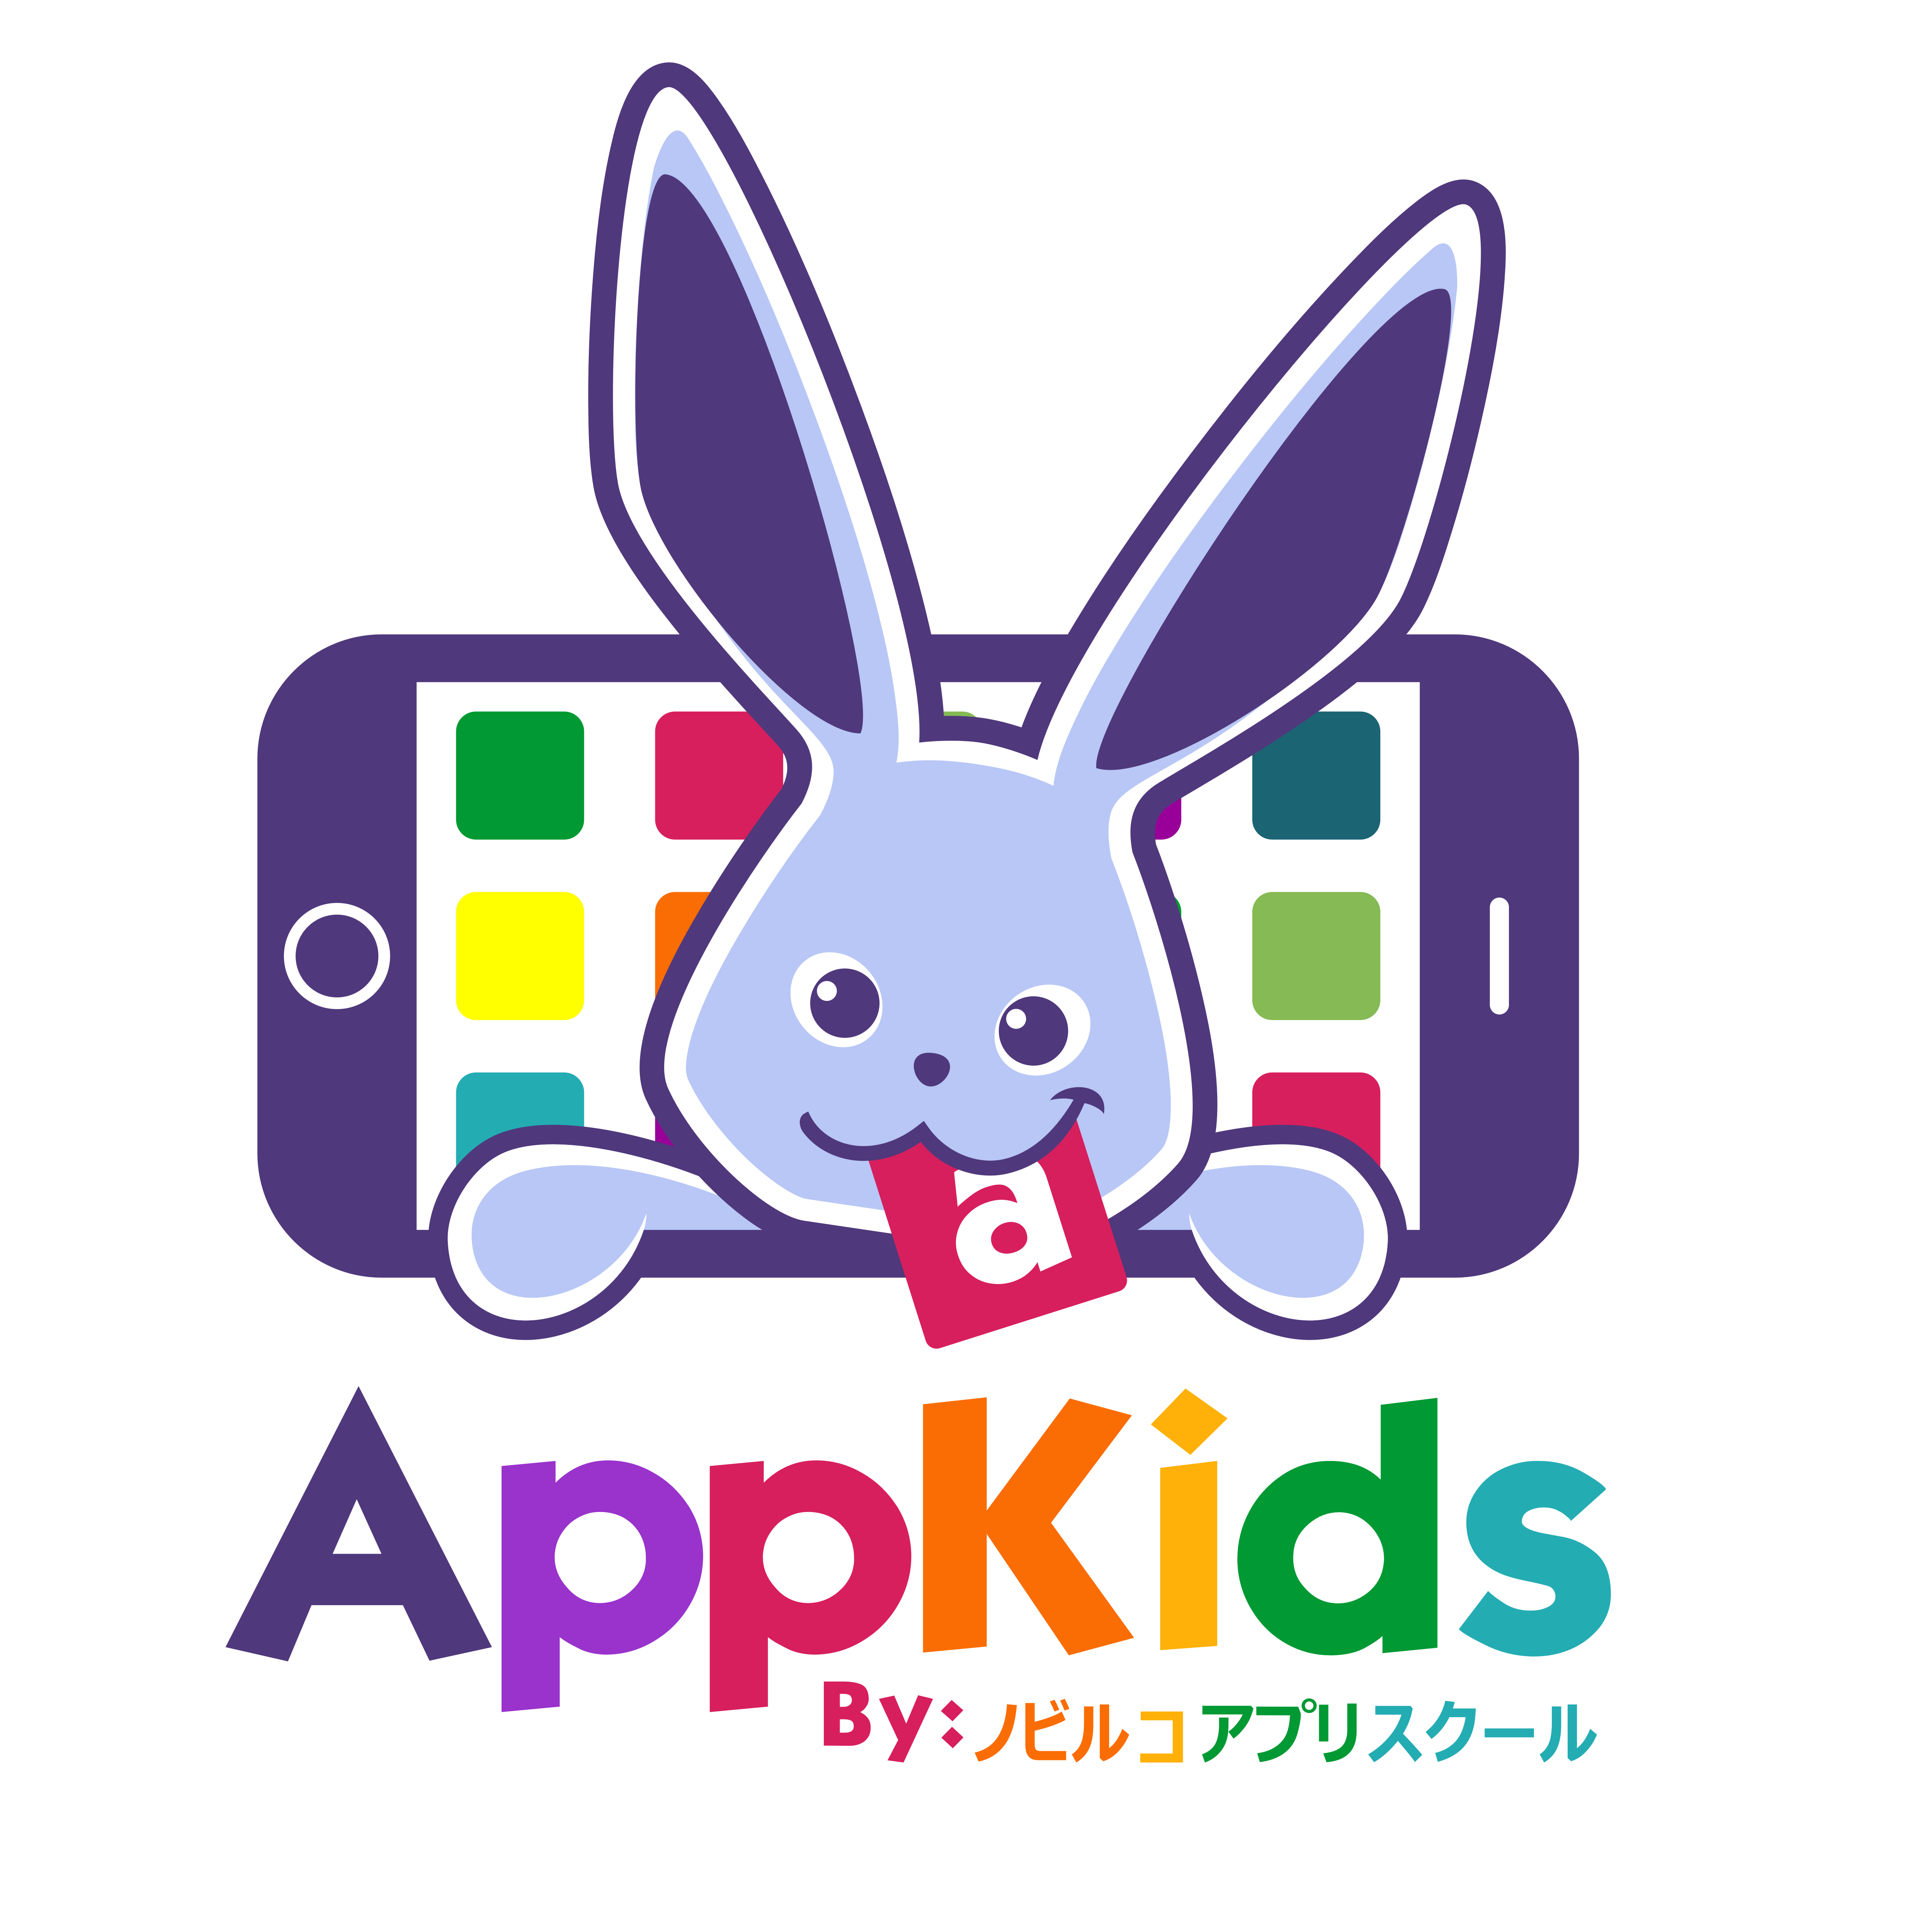 AppKids - 小学生向けプログラミング教育 大崎,五反田,目黒,品川